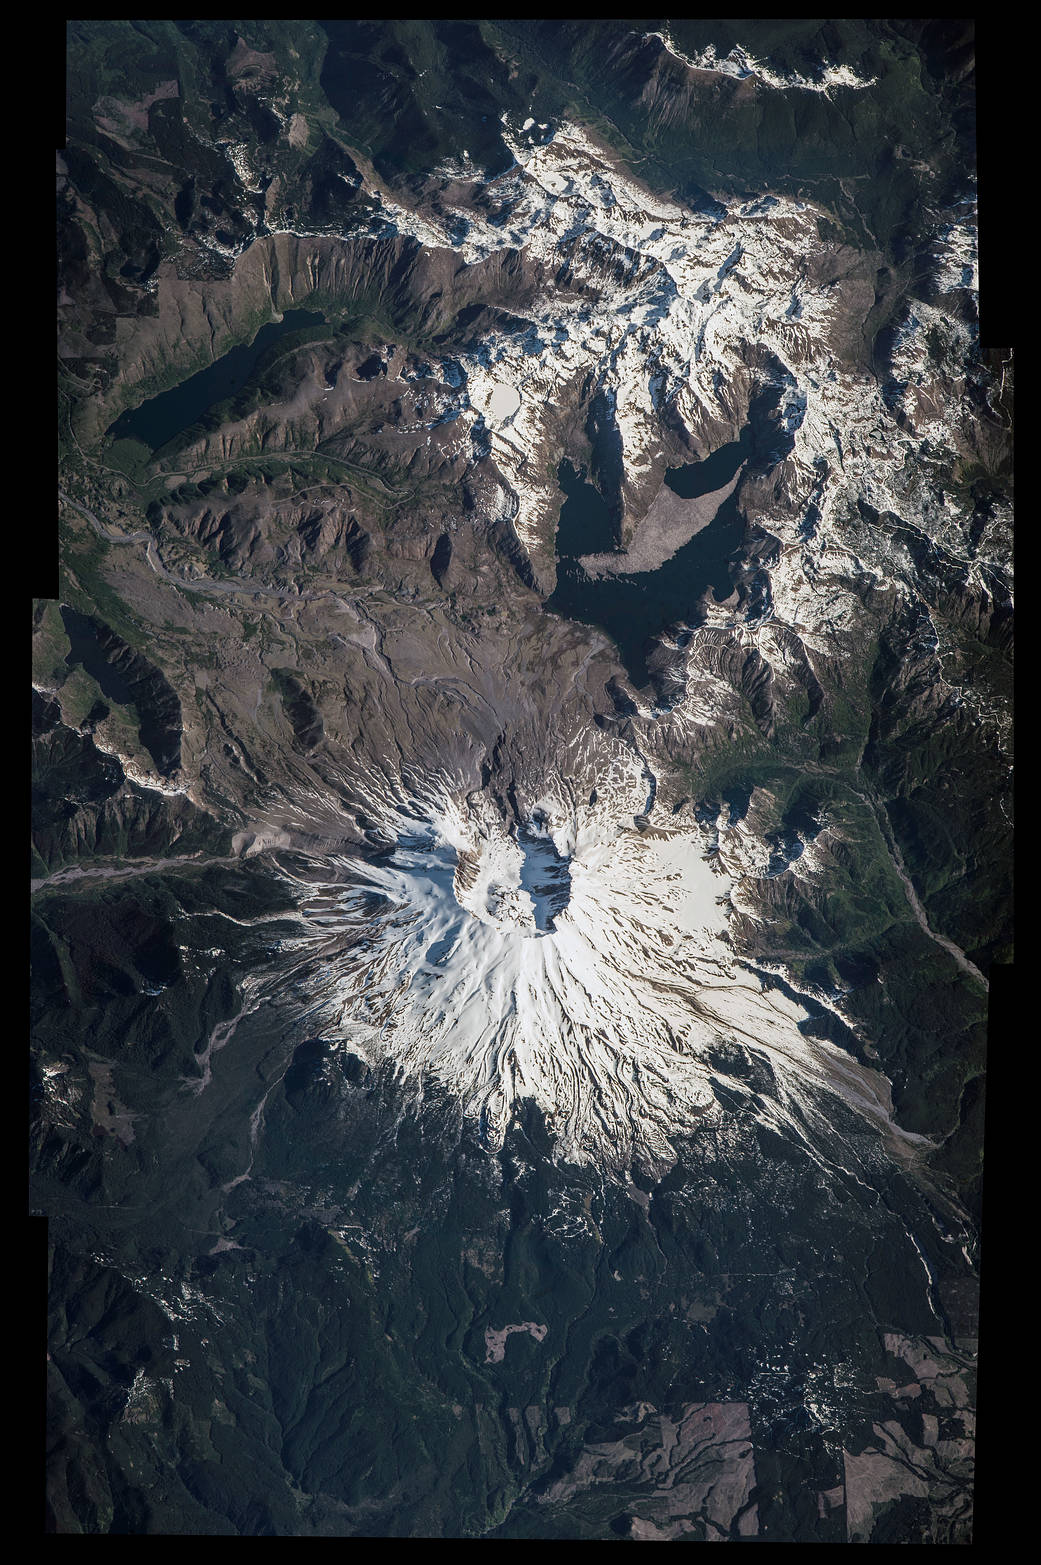 NASA astronaut Jeff Williams, commander of Expedition 48, took this photo of Mount St. Helens National Volcanic Monument from his vantage point aboard the International Space Station.